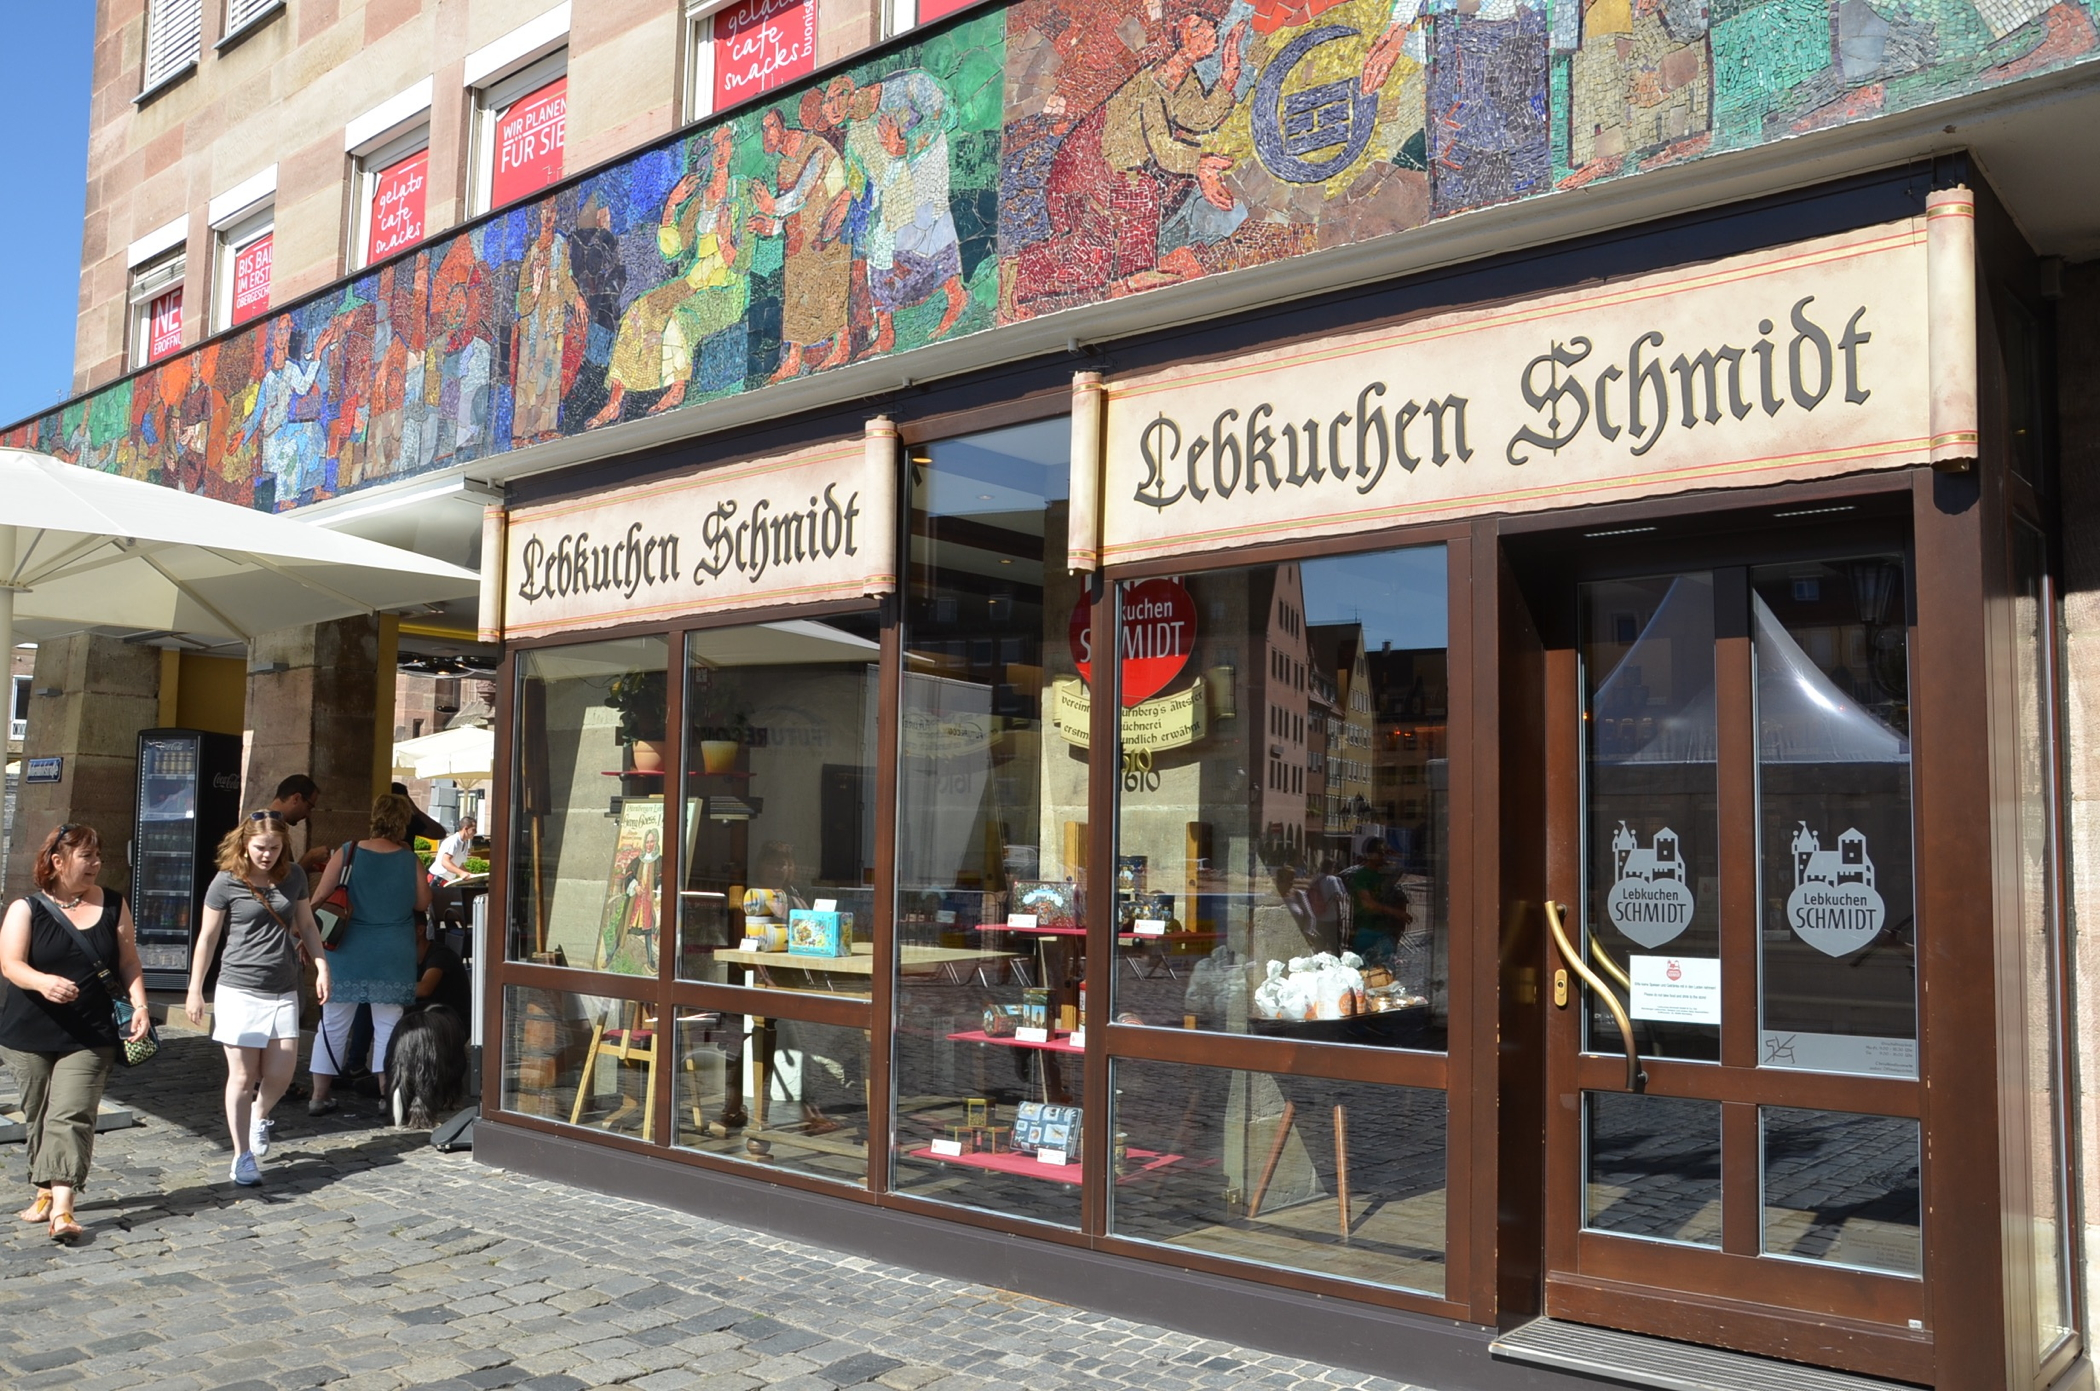 Find the best Nuremberg sausage and gingerbread in the best nuremberg restaurants and Lebkuchen Schmidt